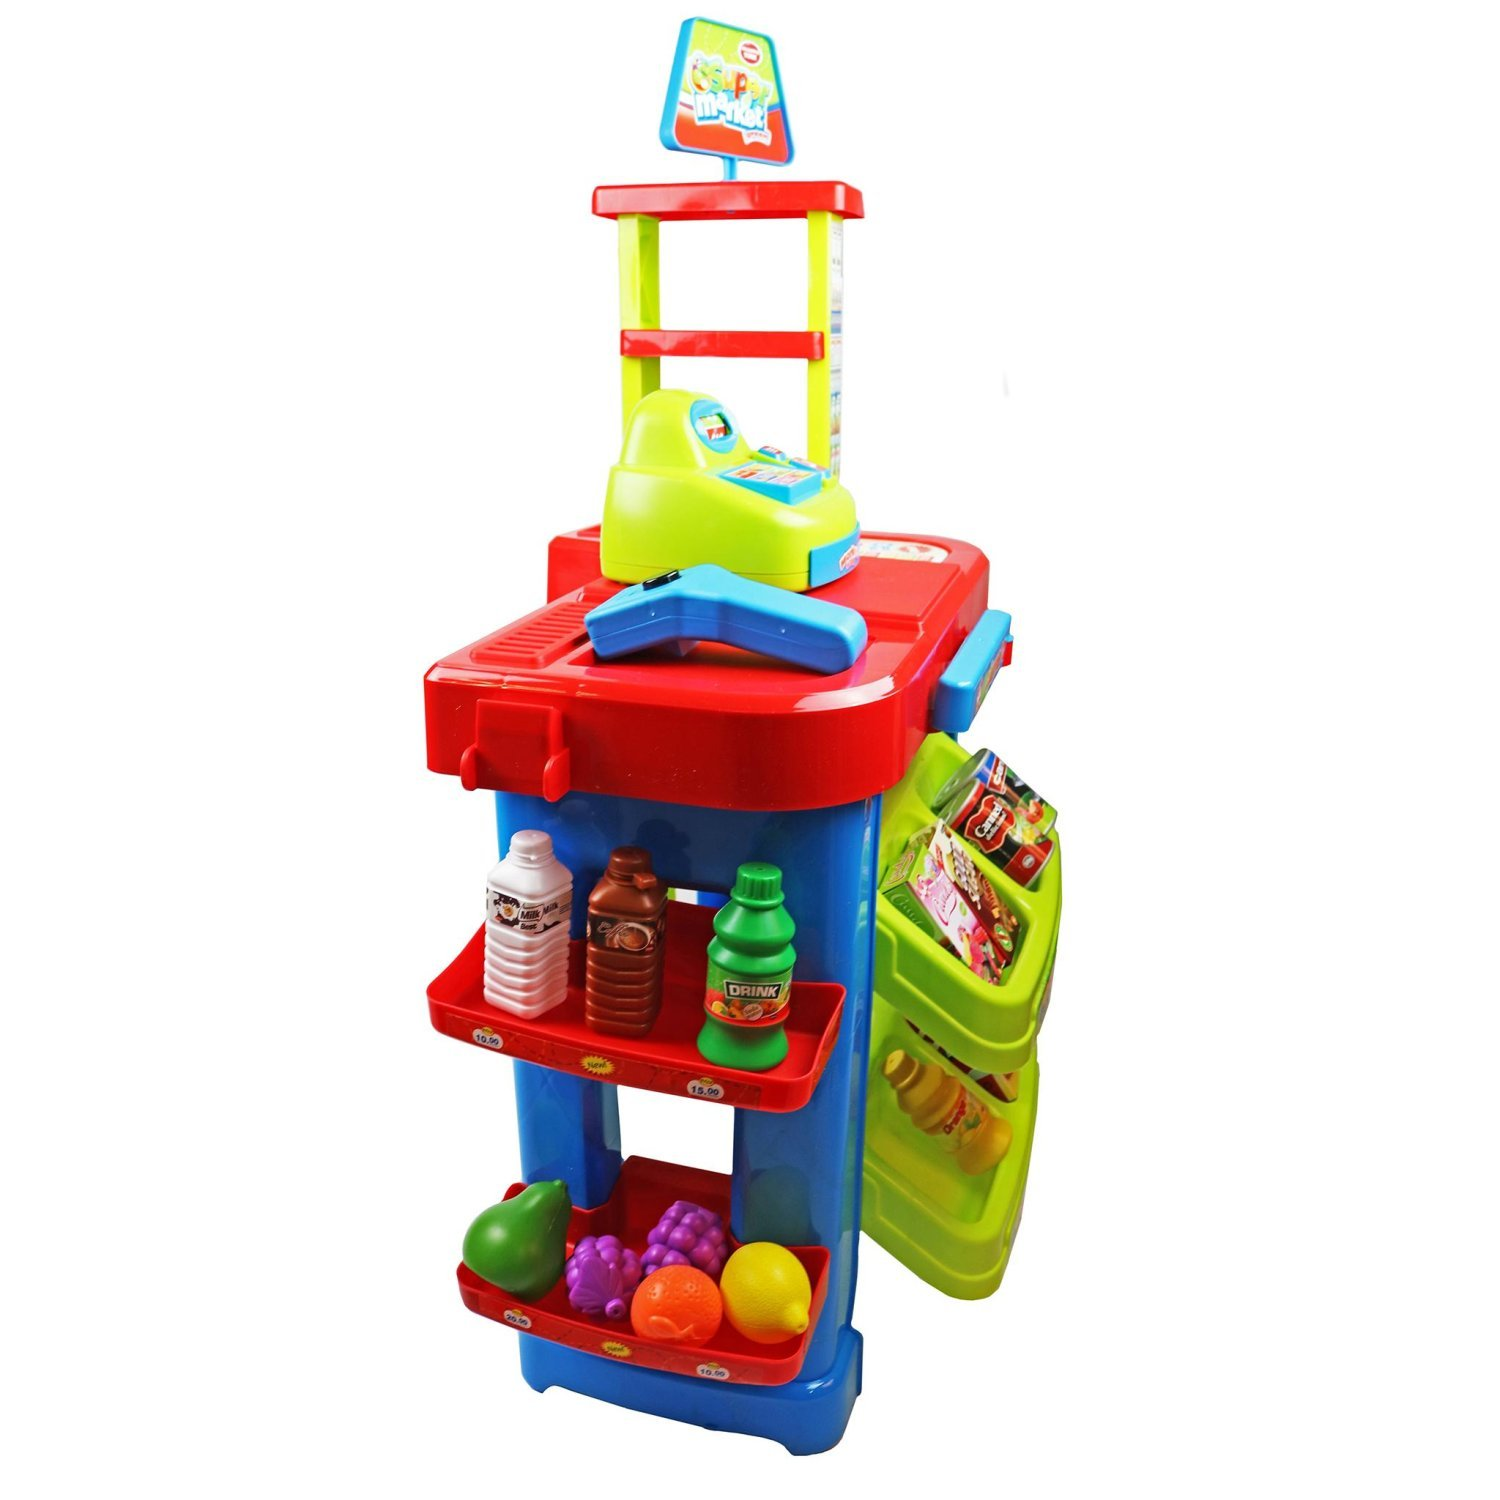 Best Play Toys : Childrens kids supermarket shop grocery pretend toy play